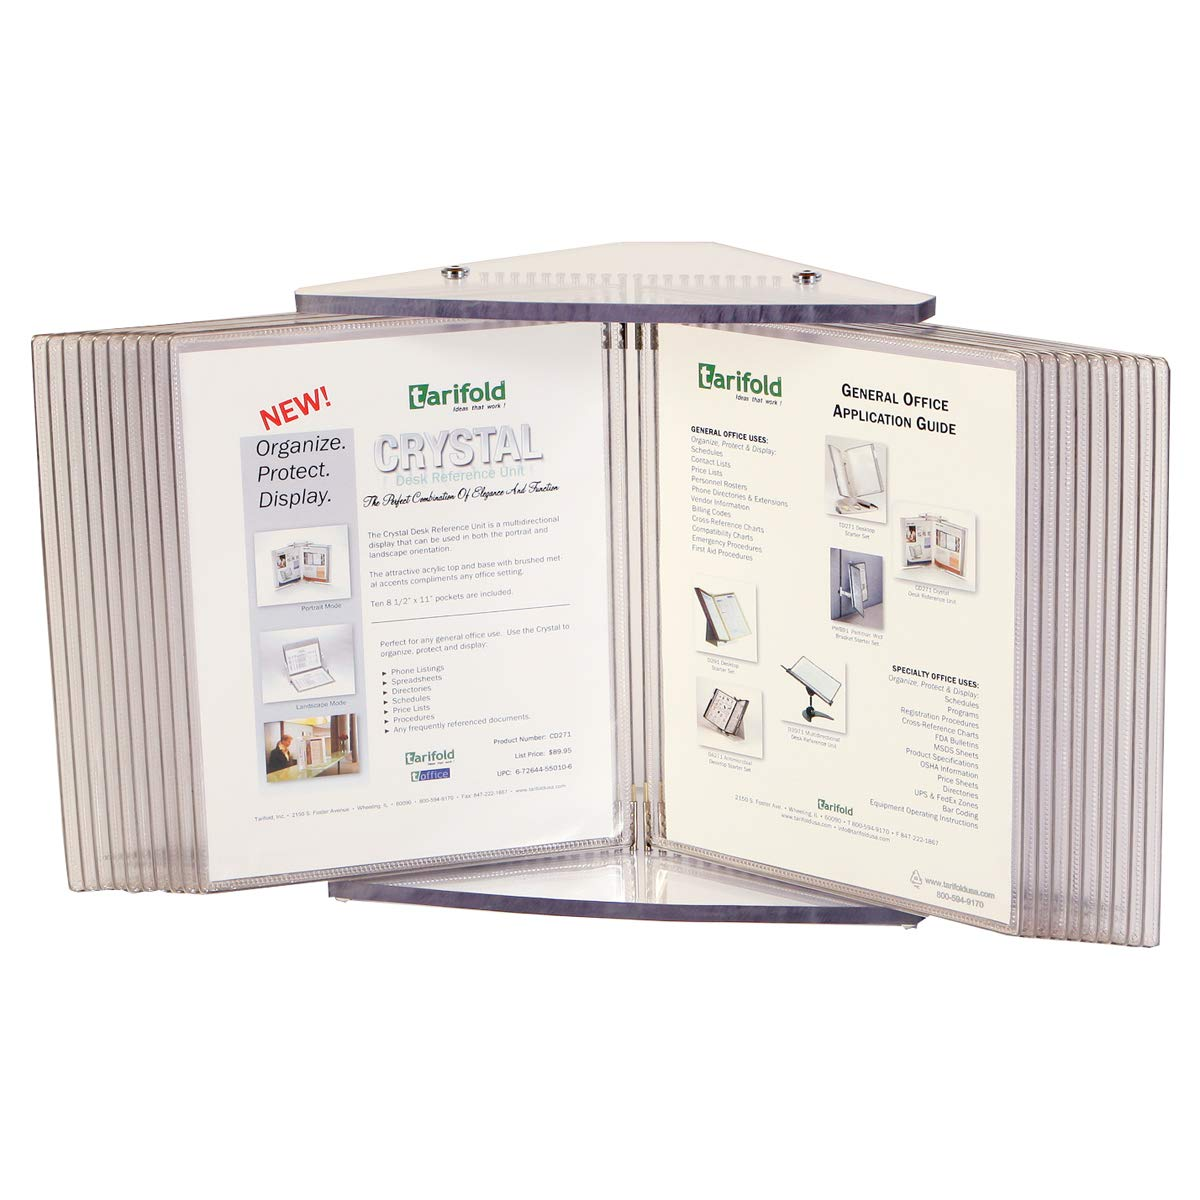 Tarifold, Inc. CD272 Crystal Desk Display Unit With 20 Display Pockets, 40 Sheet Capacity by Tarifold